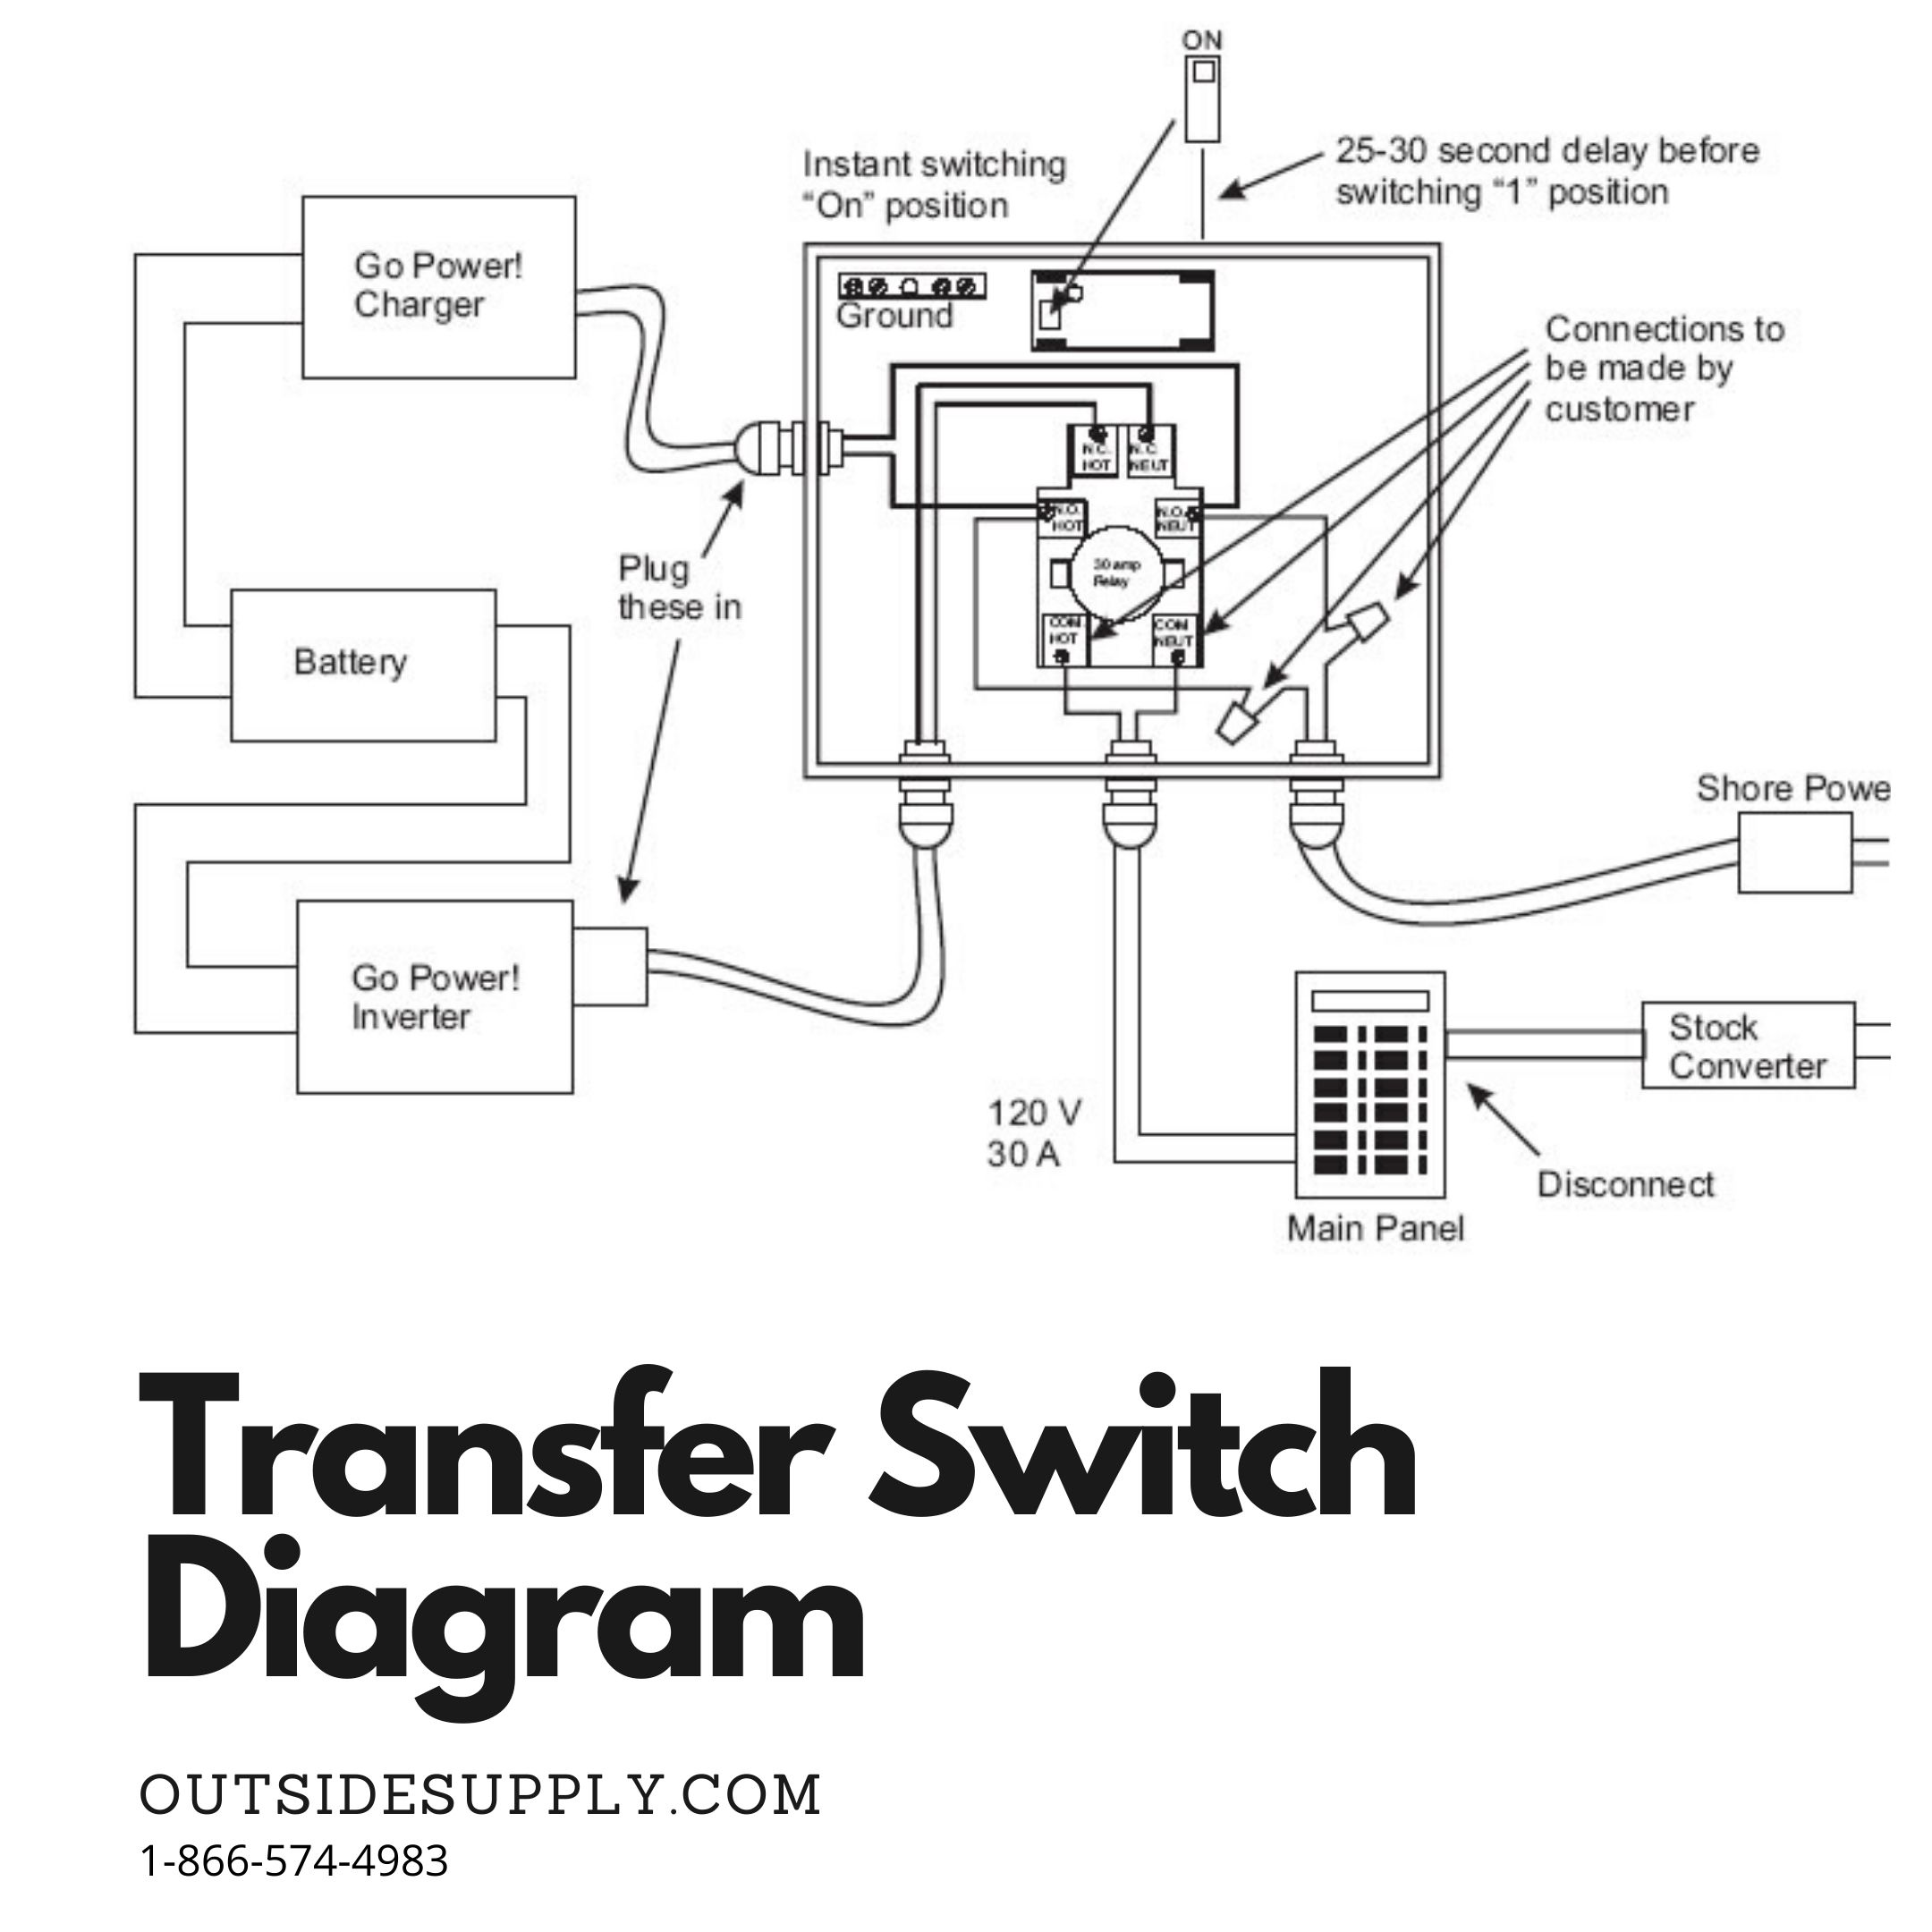 power converter wiring diagram go power 30 amp transfer switch 30 amp transfer switch wiring diagram for inverter installs